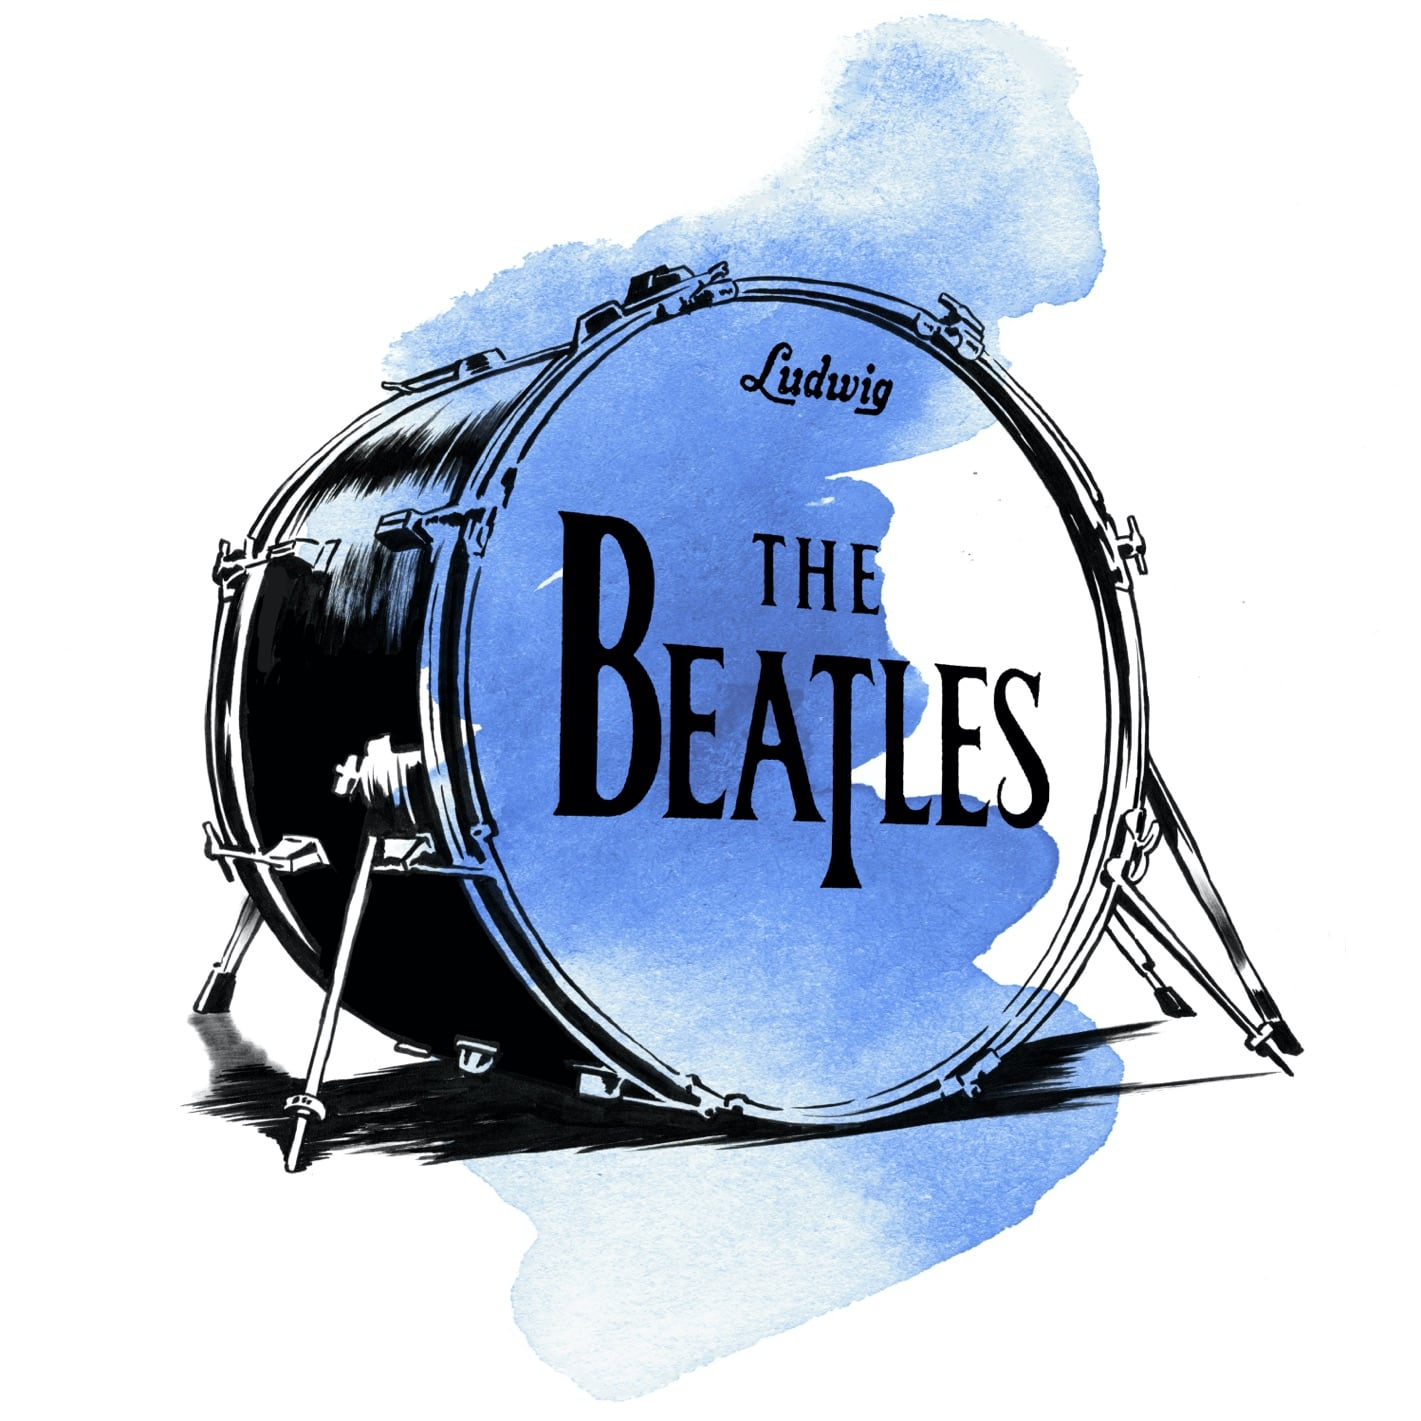 A watercolor illustration of a Ludwig bass drum repping the Beatles. Some 73 million people watched the band's U.S. debut on The Ed Sullivan Show in 1964, and Diane Warren was one of them!